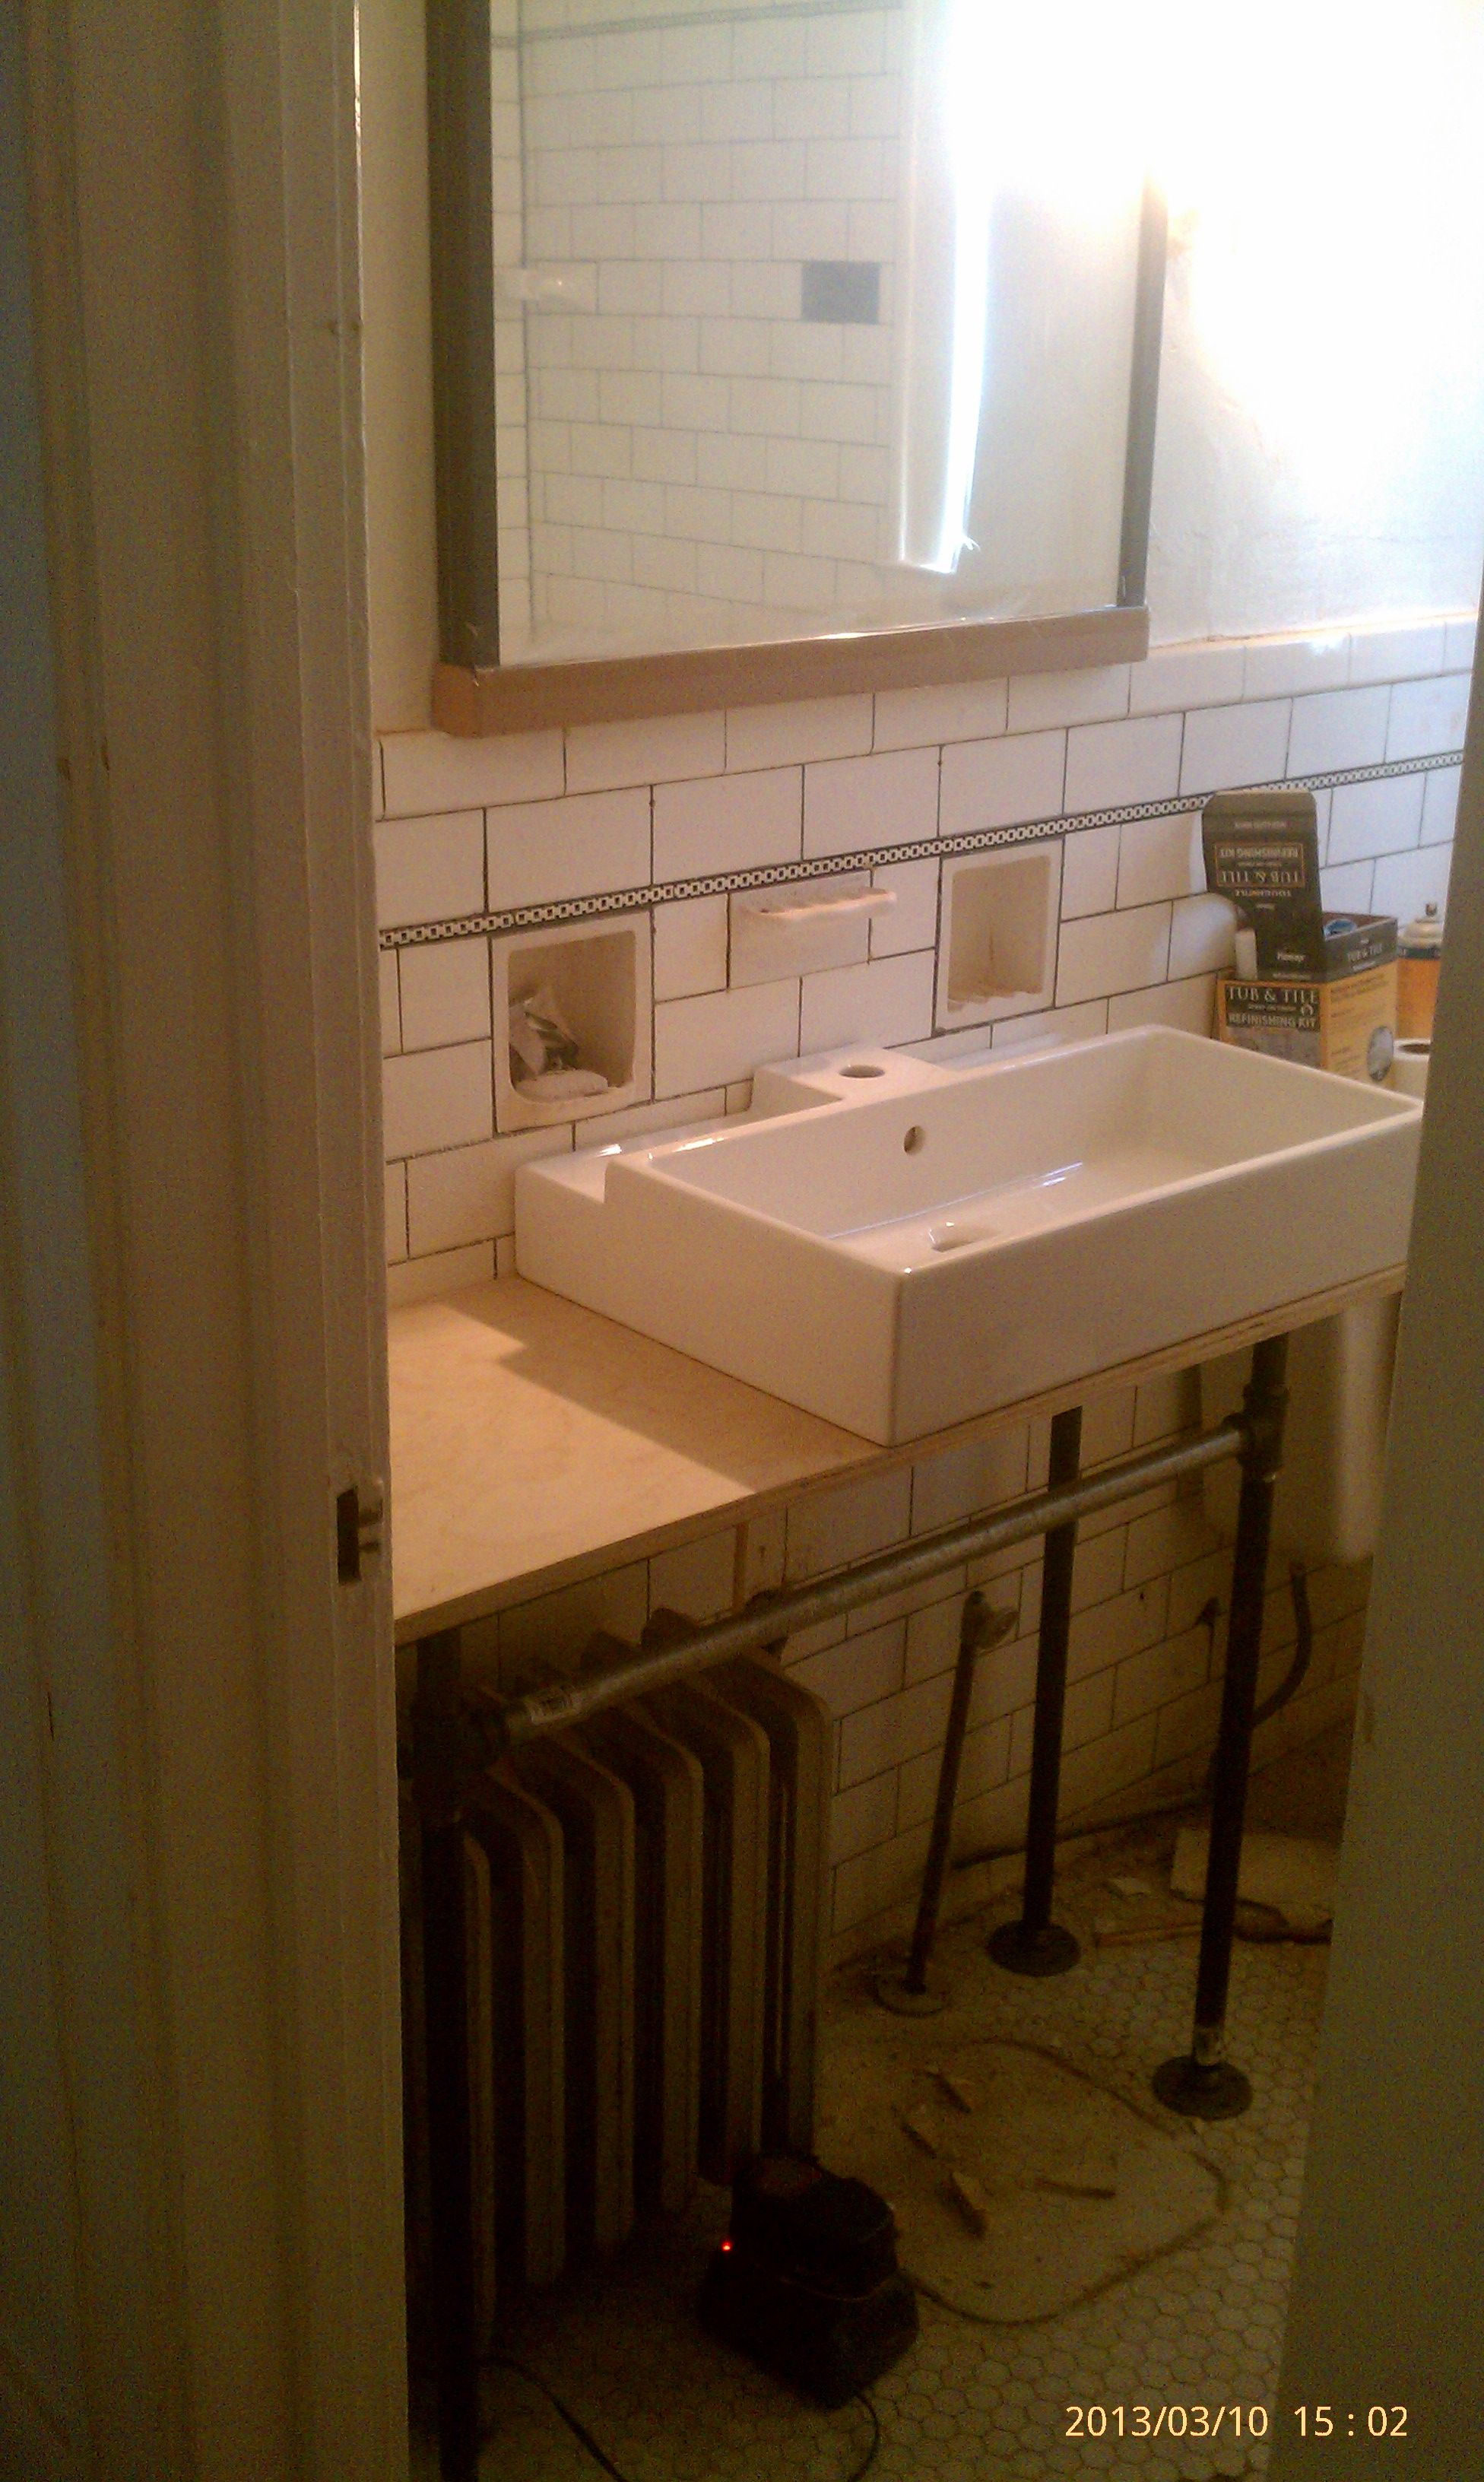 diy converted old sink to galvanized pipe vanity and doubles as a ...